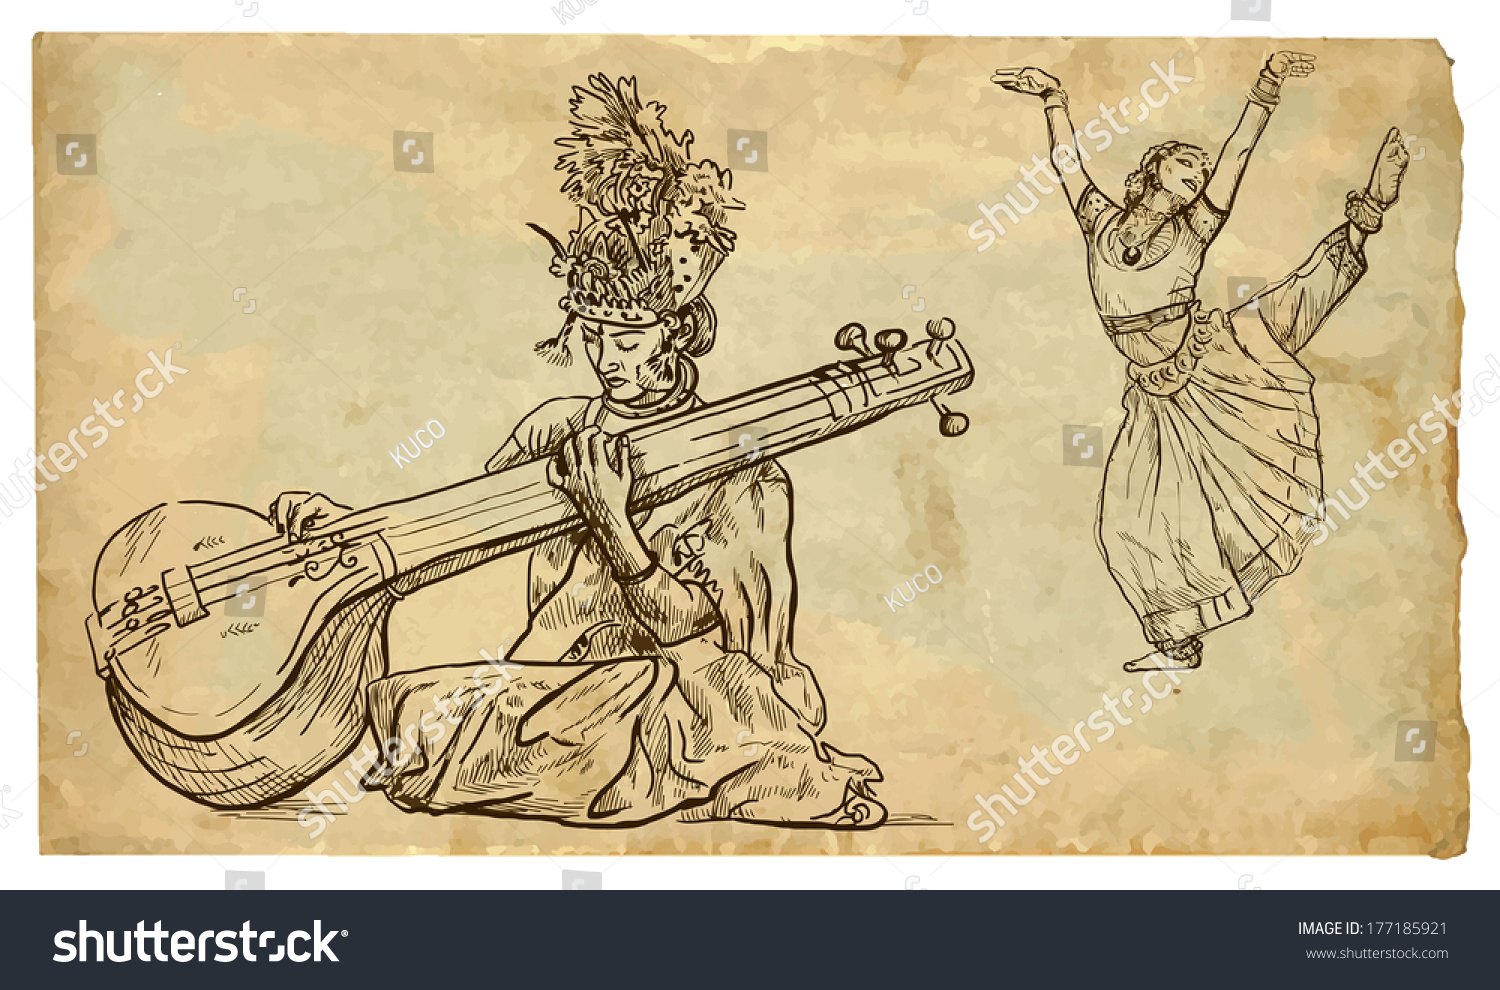 culture and music paper Music education is a field of study associated with the teaching and learning of  music  studies show that teaching music from other cultures can help students  perceive  in music education, and women presented papers at conferences.